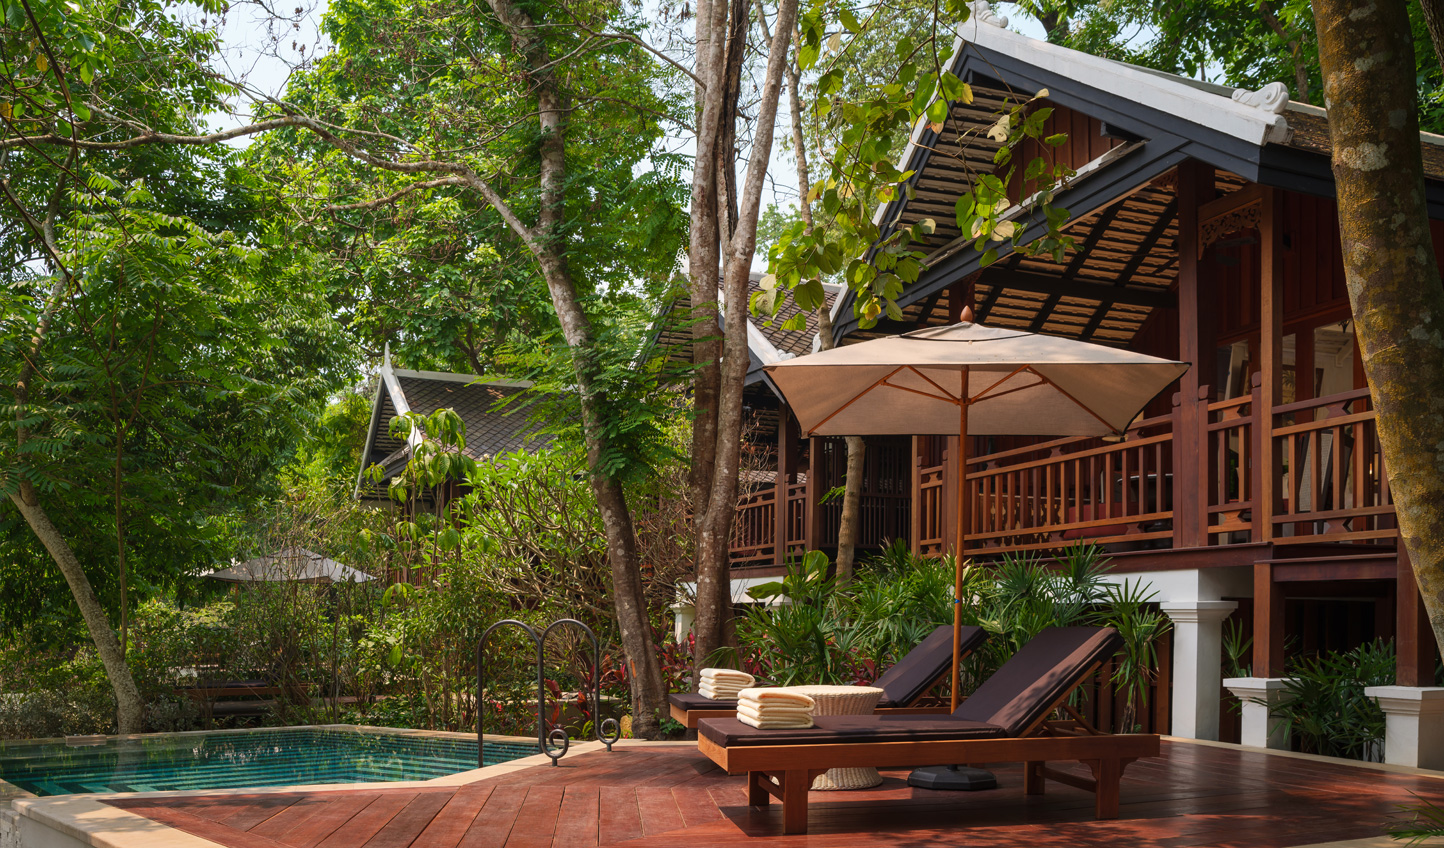 Relax by your private pool in the Waterfall Pool Villa